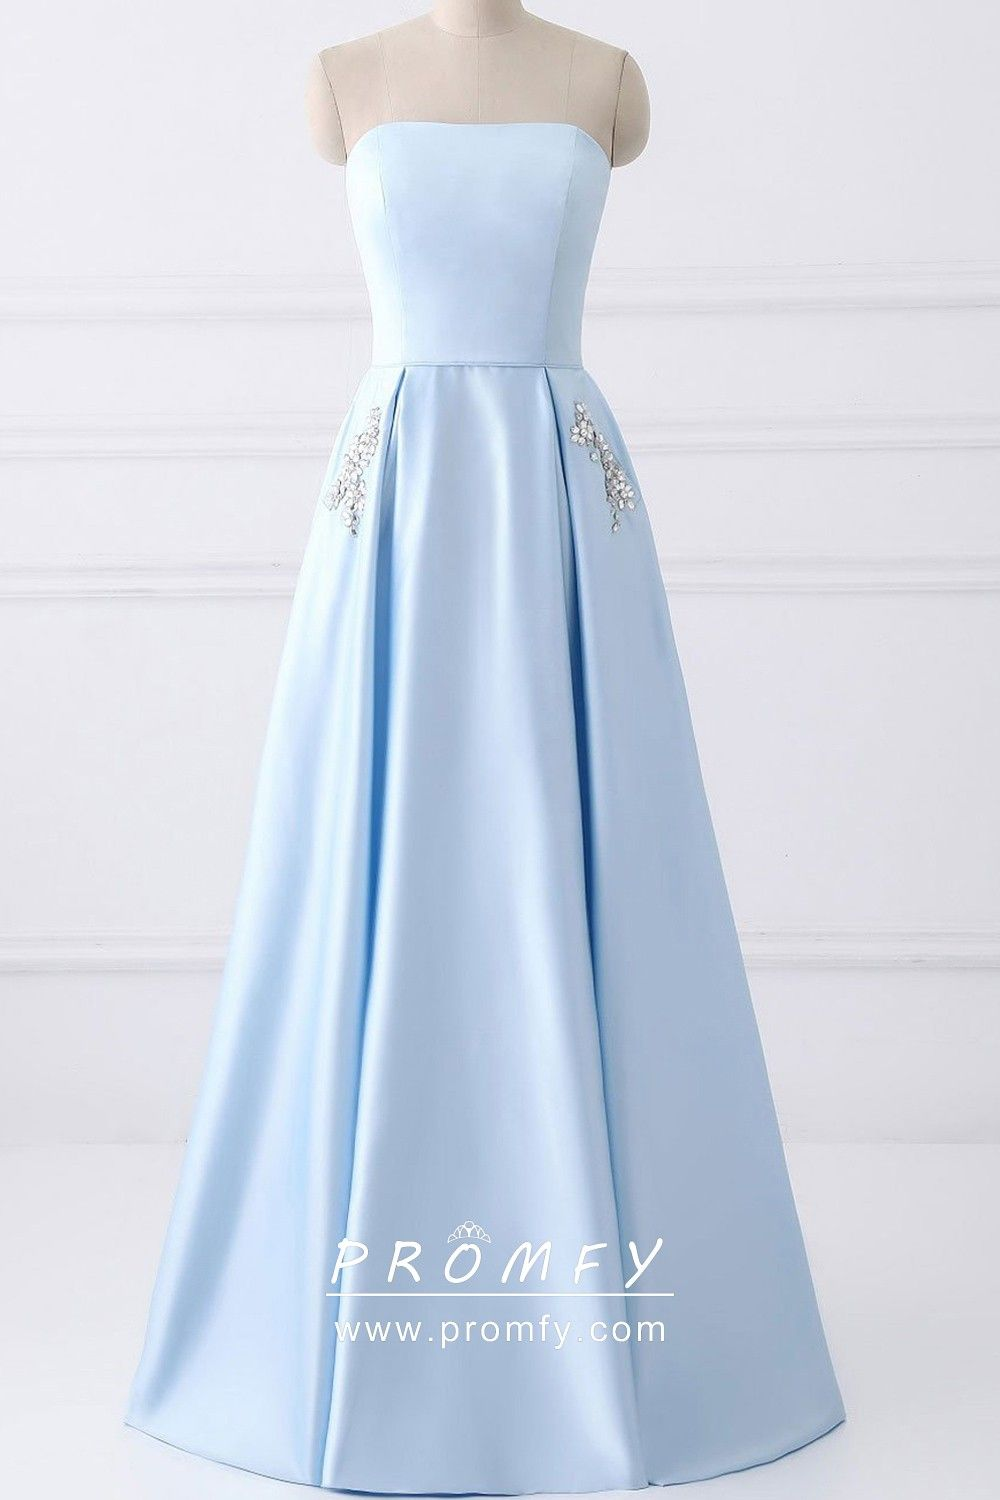 Baby Blue Satin Beaded Pockets Strapless Prom Dress Dresses Long Blue Dress Strapless Prom Dress [ 1500 x 1000 Pixel ]